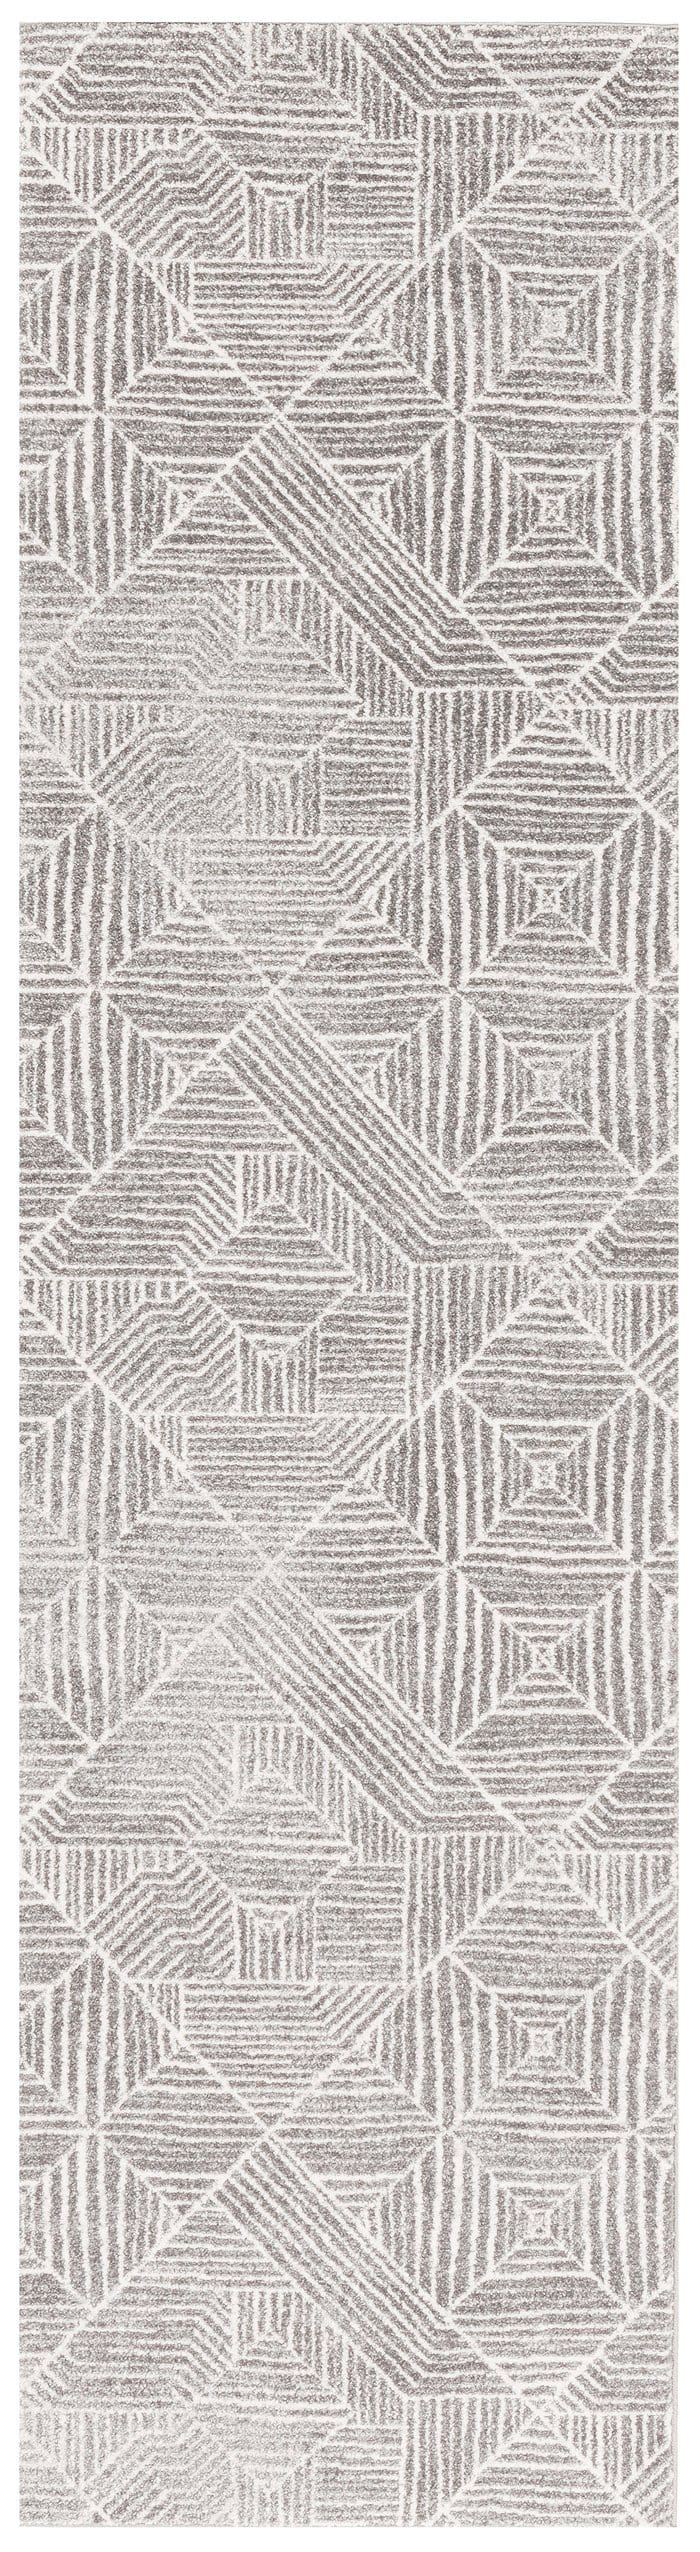 Suong Stone & White Tribal Diamond Pattern Runner Rug